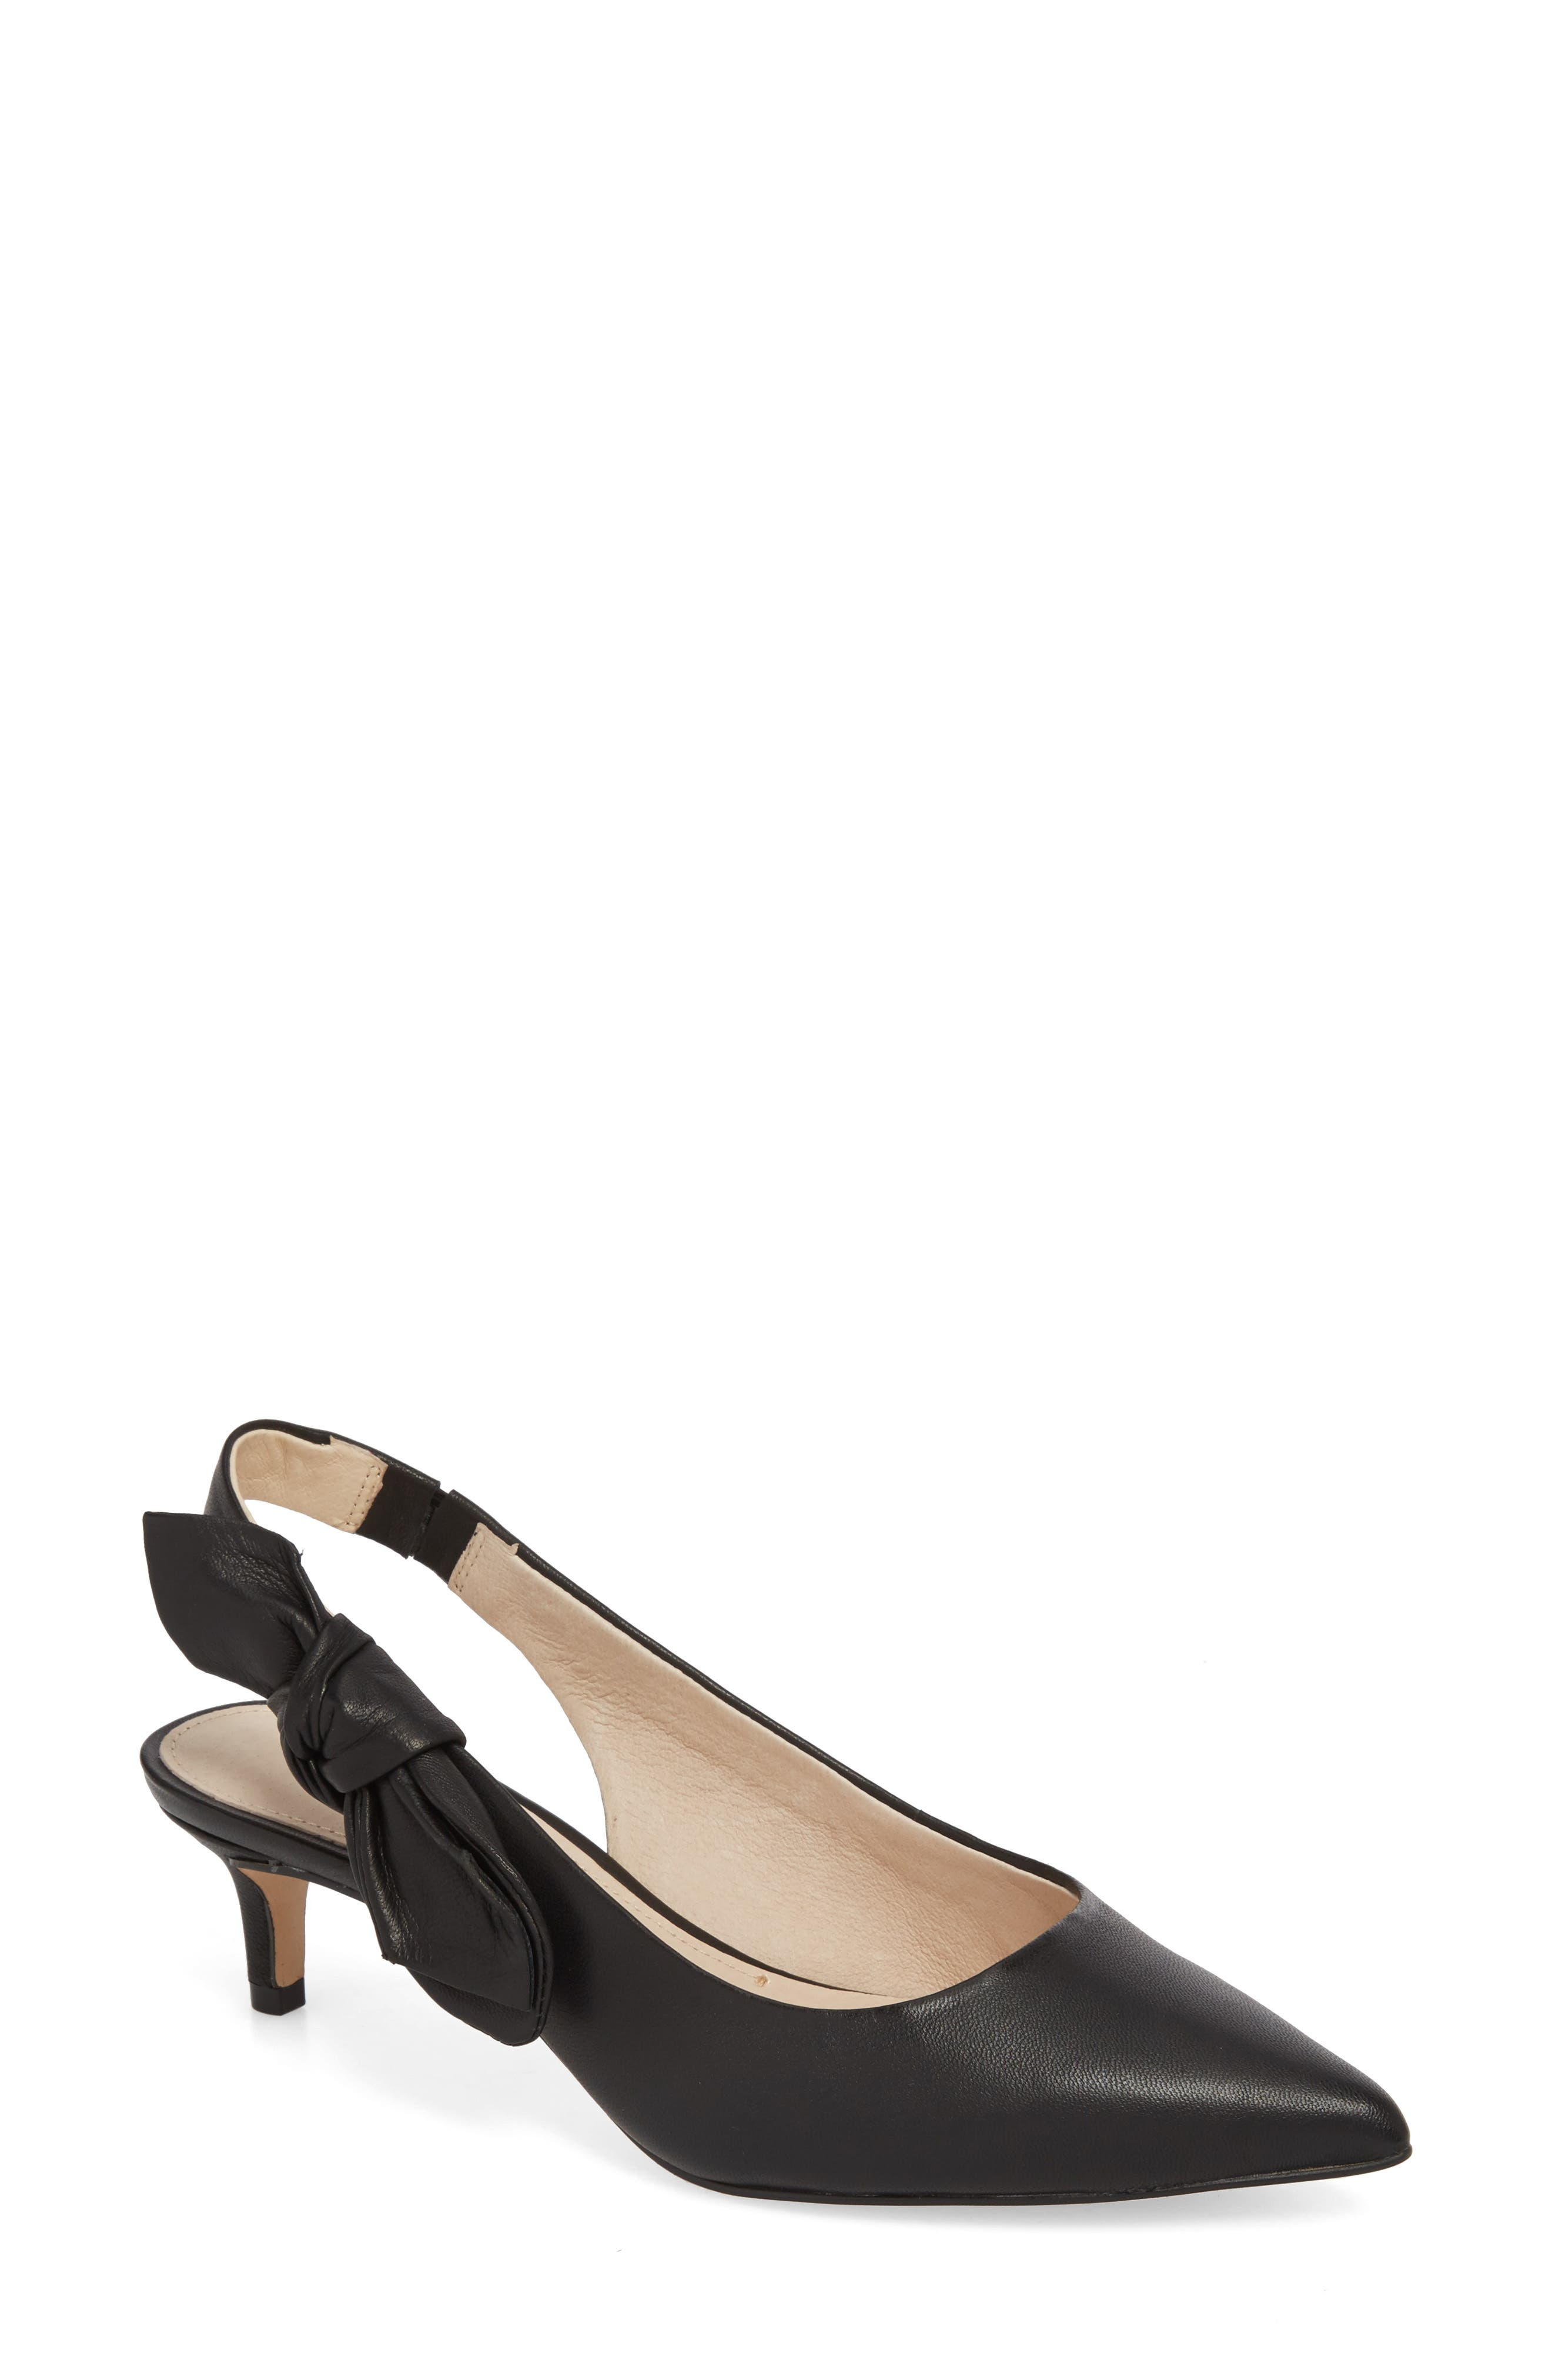 Jasilen Slingback Pump,                             Main thumbnail 1, color,                             BLACK LEATHER